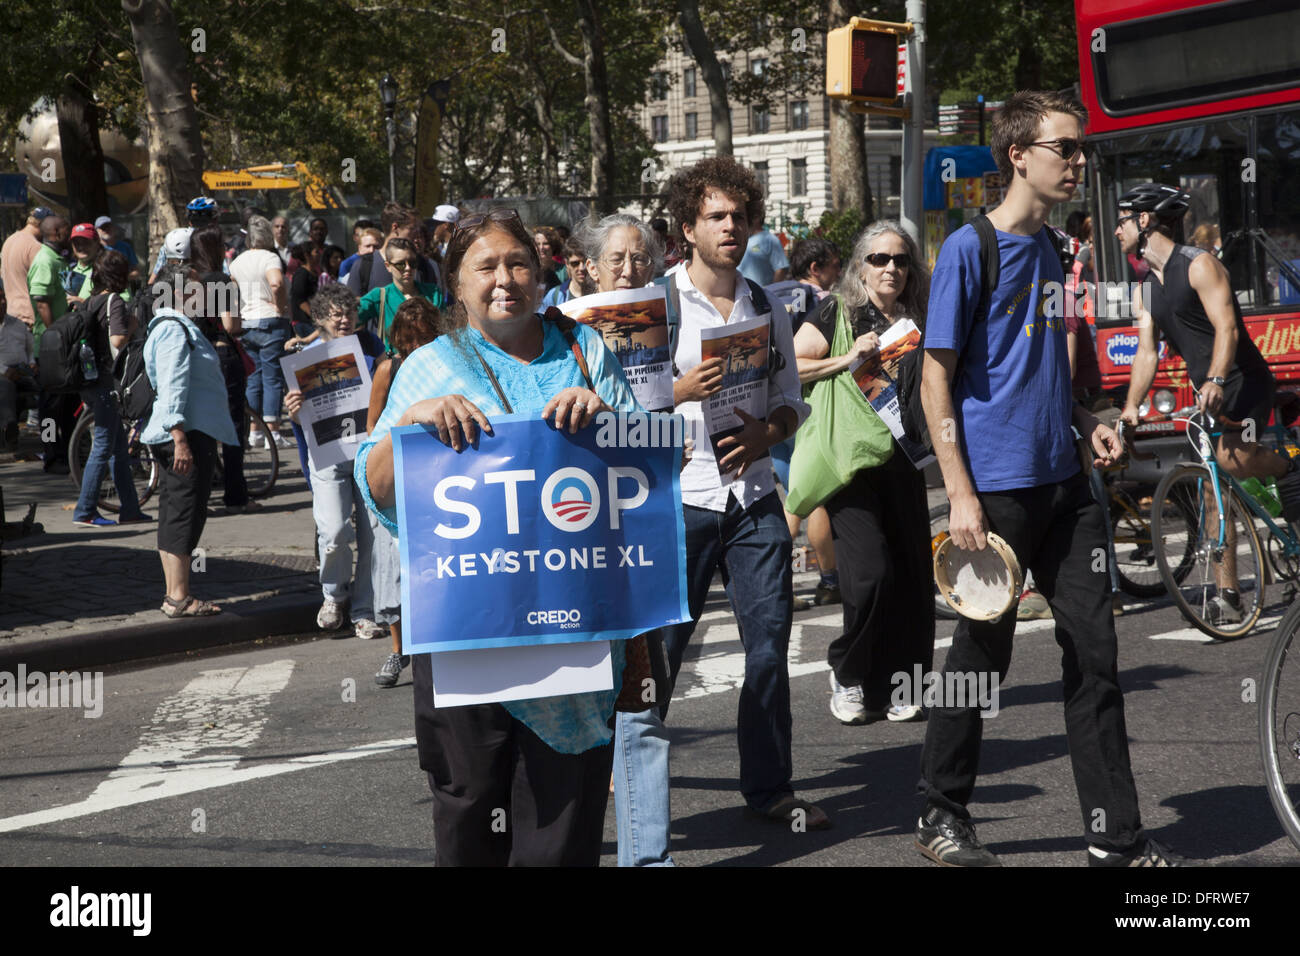 Environmental activists rally in NYC against the Keystone XL Pipeline as well as hydraulic fracking in New York - Stock Image